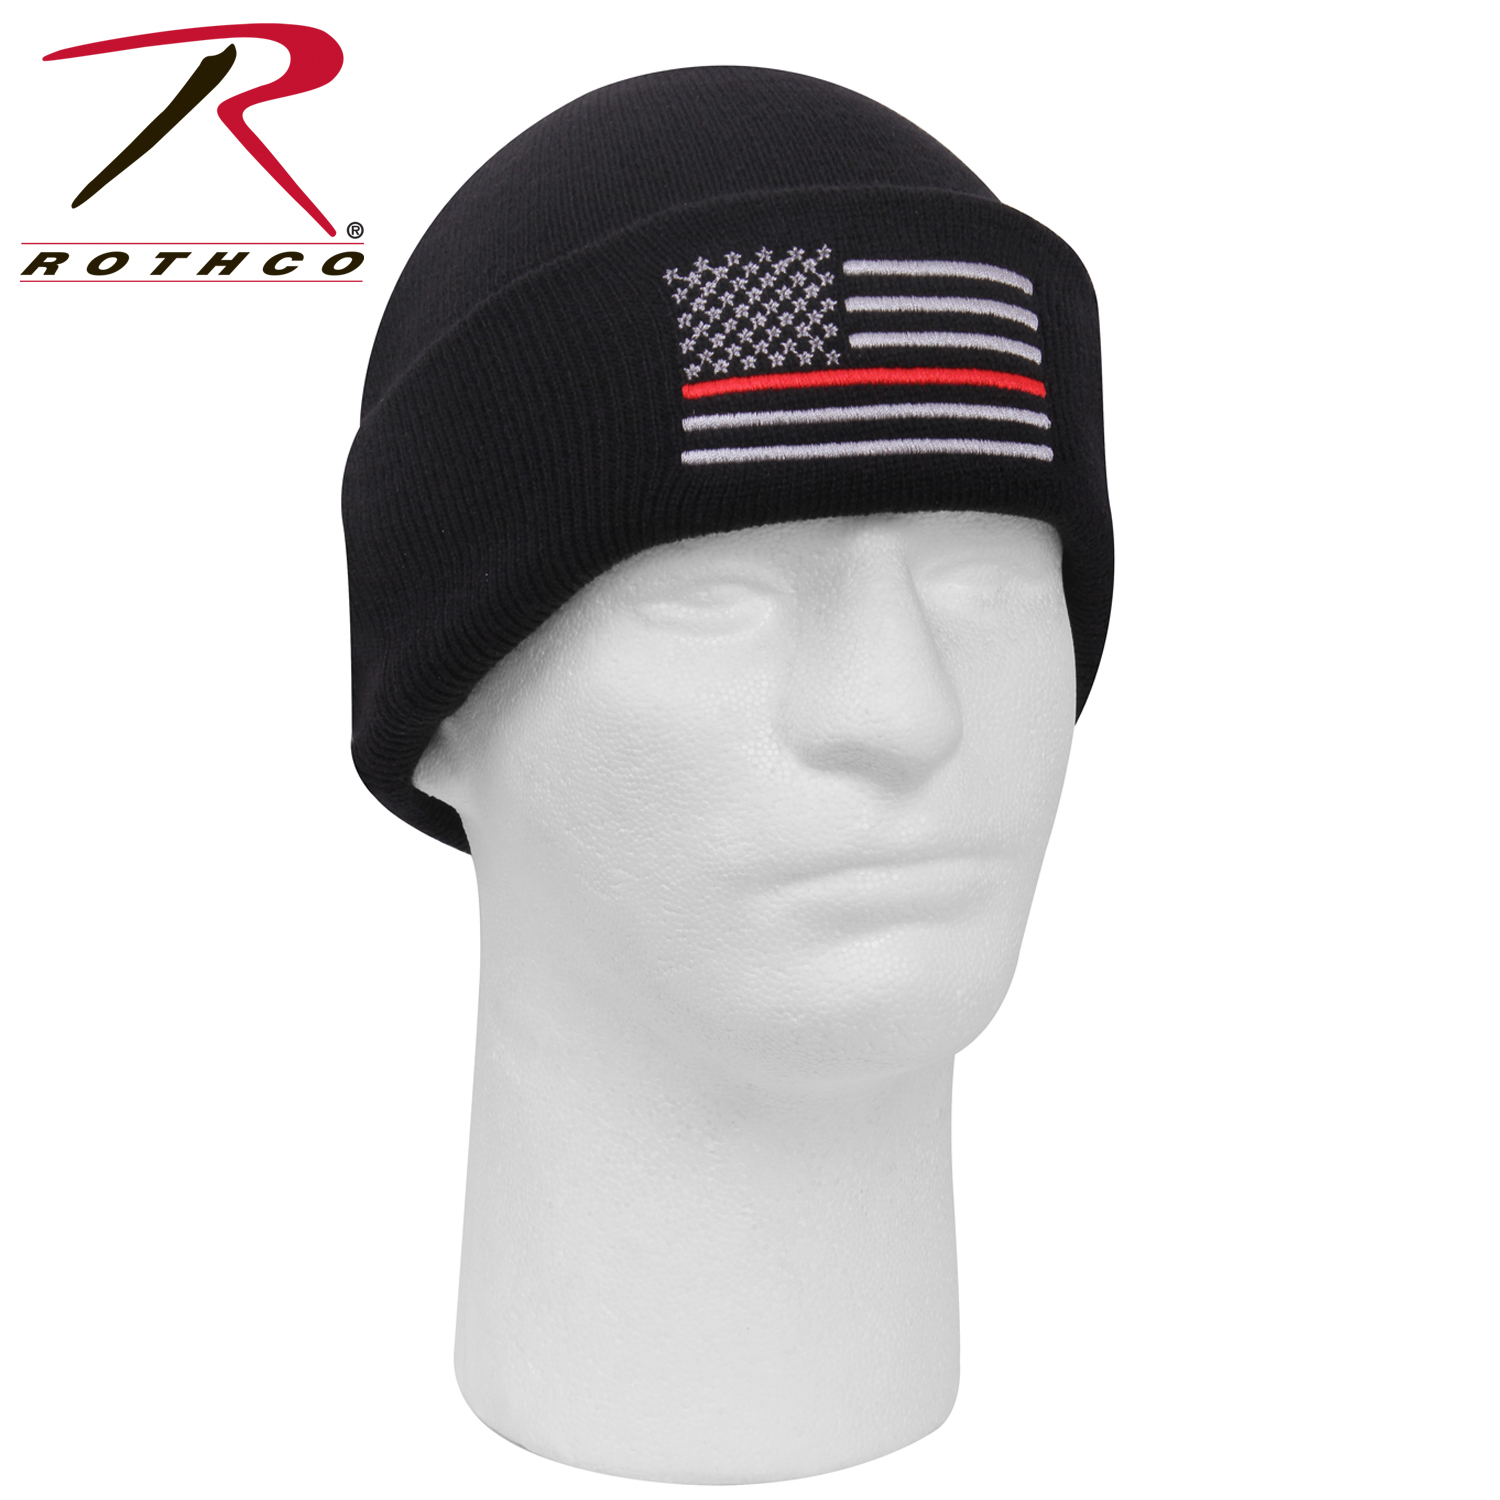 777e9c419 Rothco Deluxe Thin Red Line Watch Cap